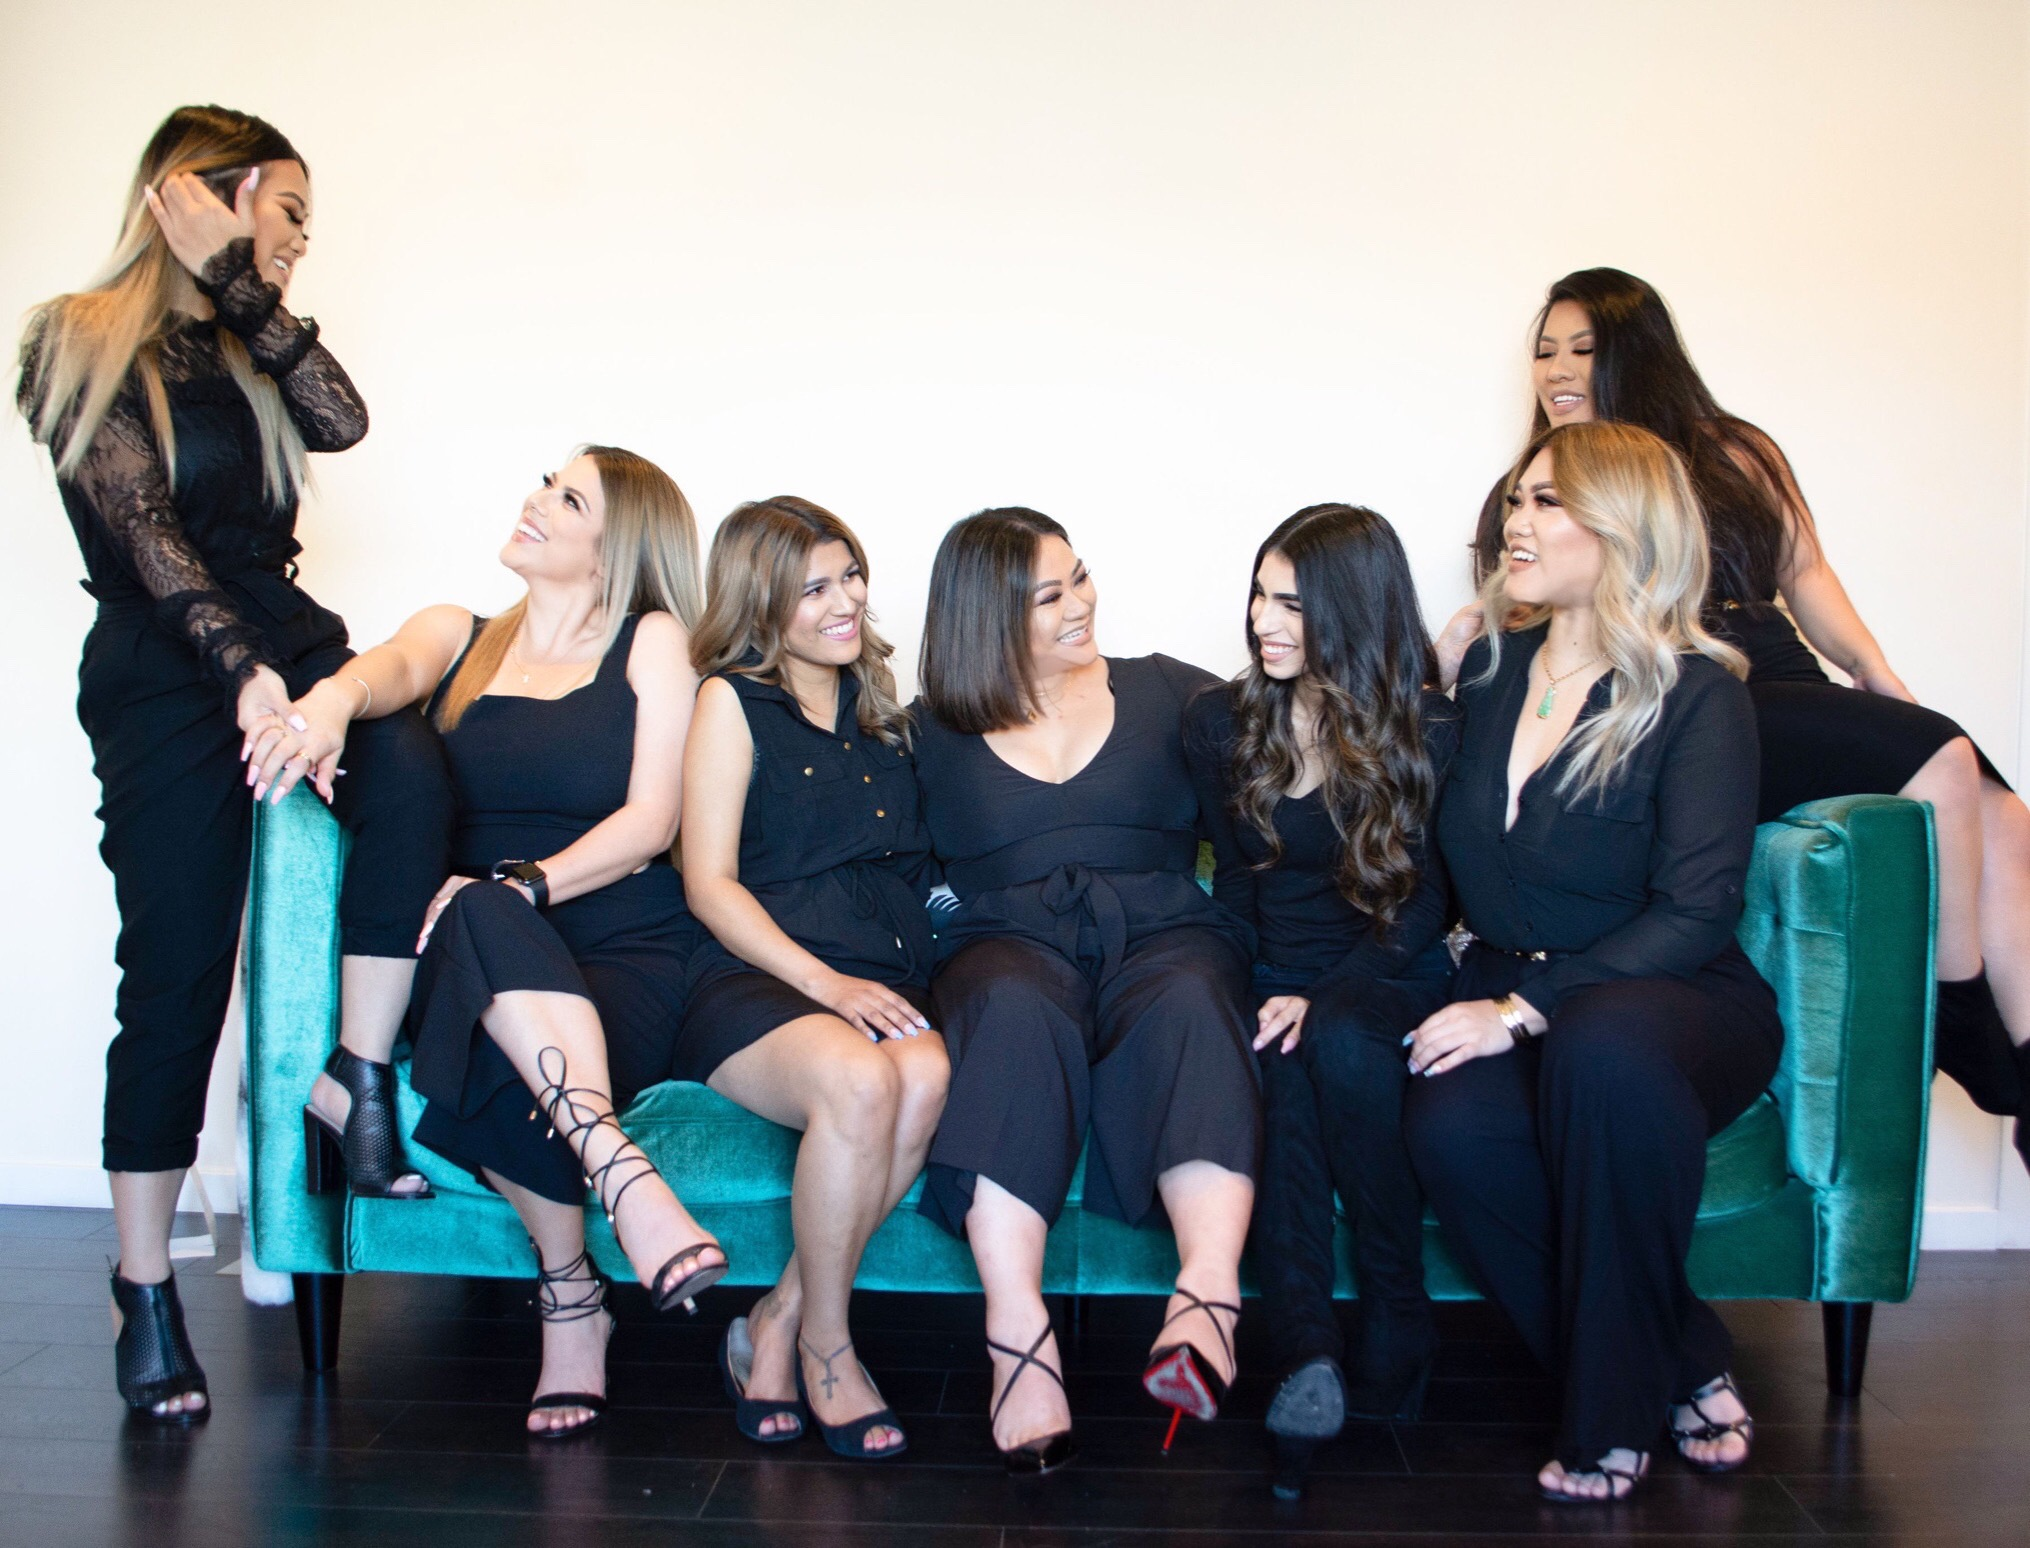 Our small but mighty team - is here to make you feel beautiful again, one lash at a time.